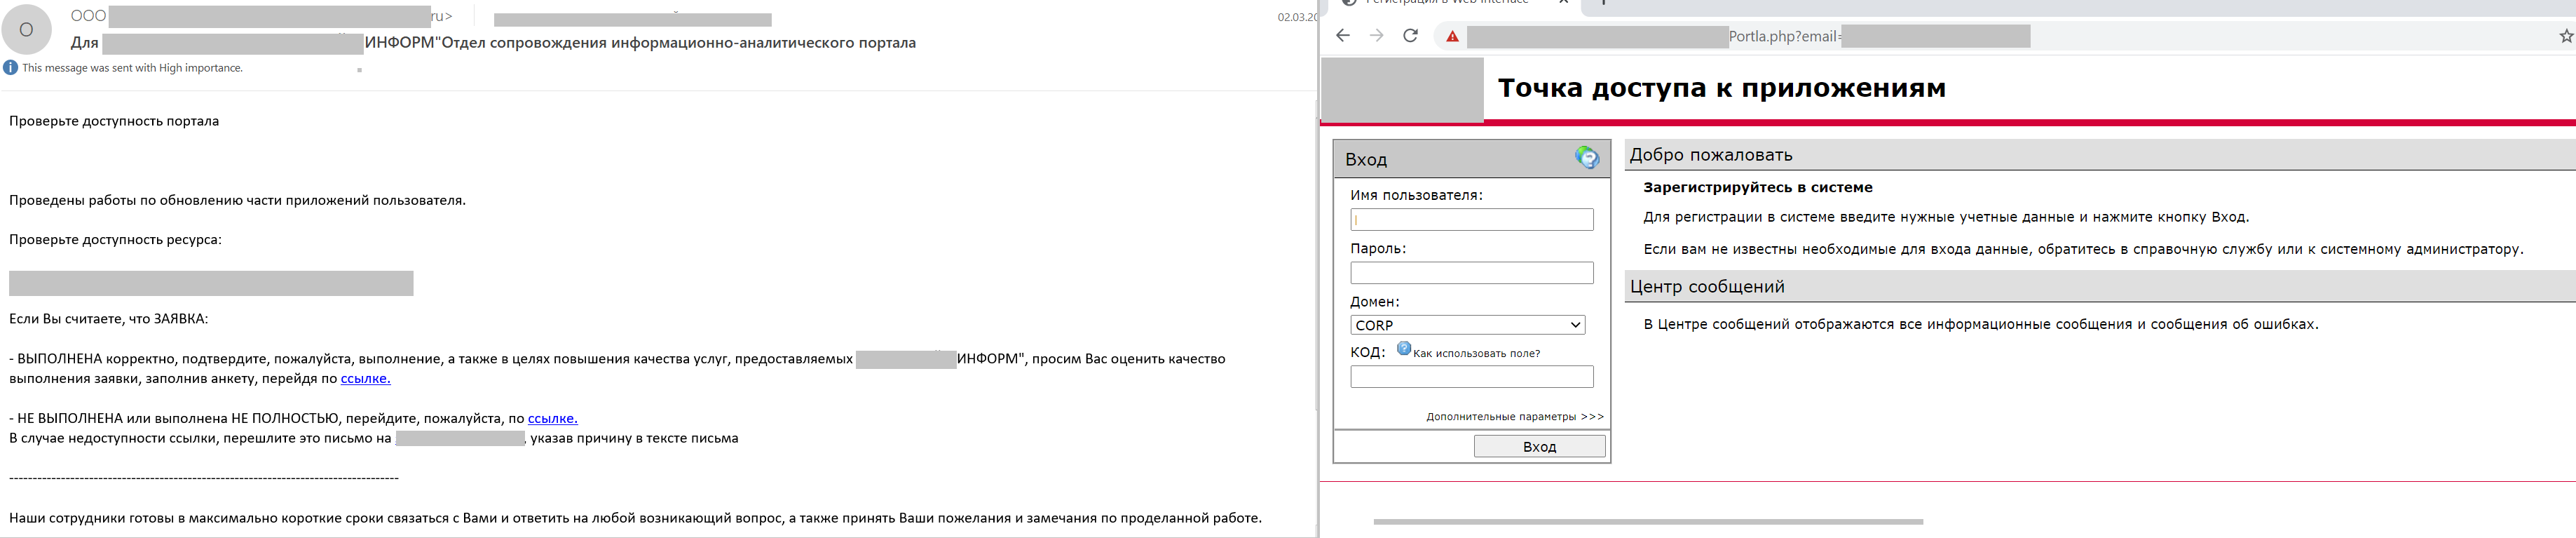 Spam and phishing in Q1 2021 12